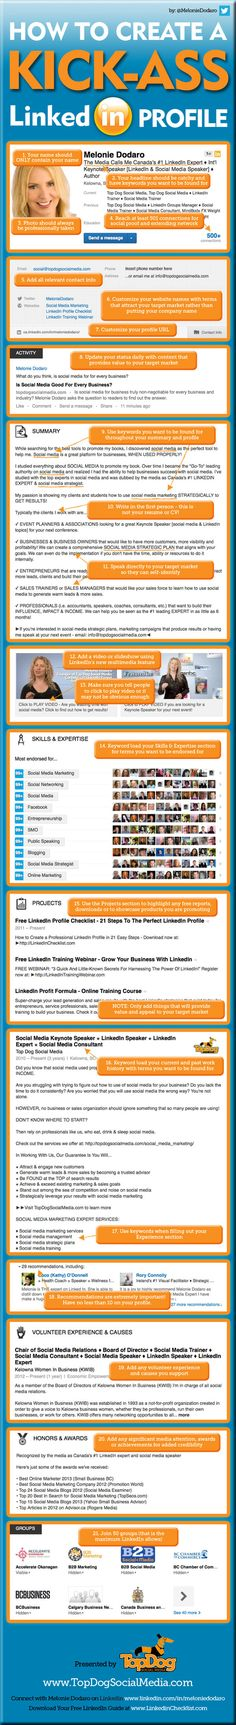 How to Create the Perfect LinkedIn Profile [Infographic]